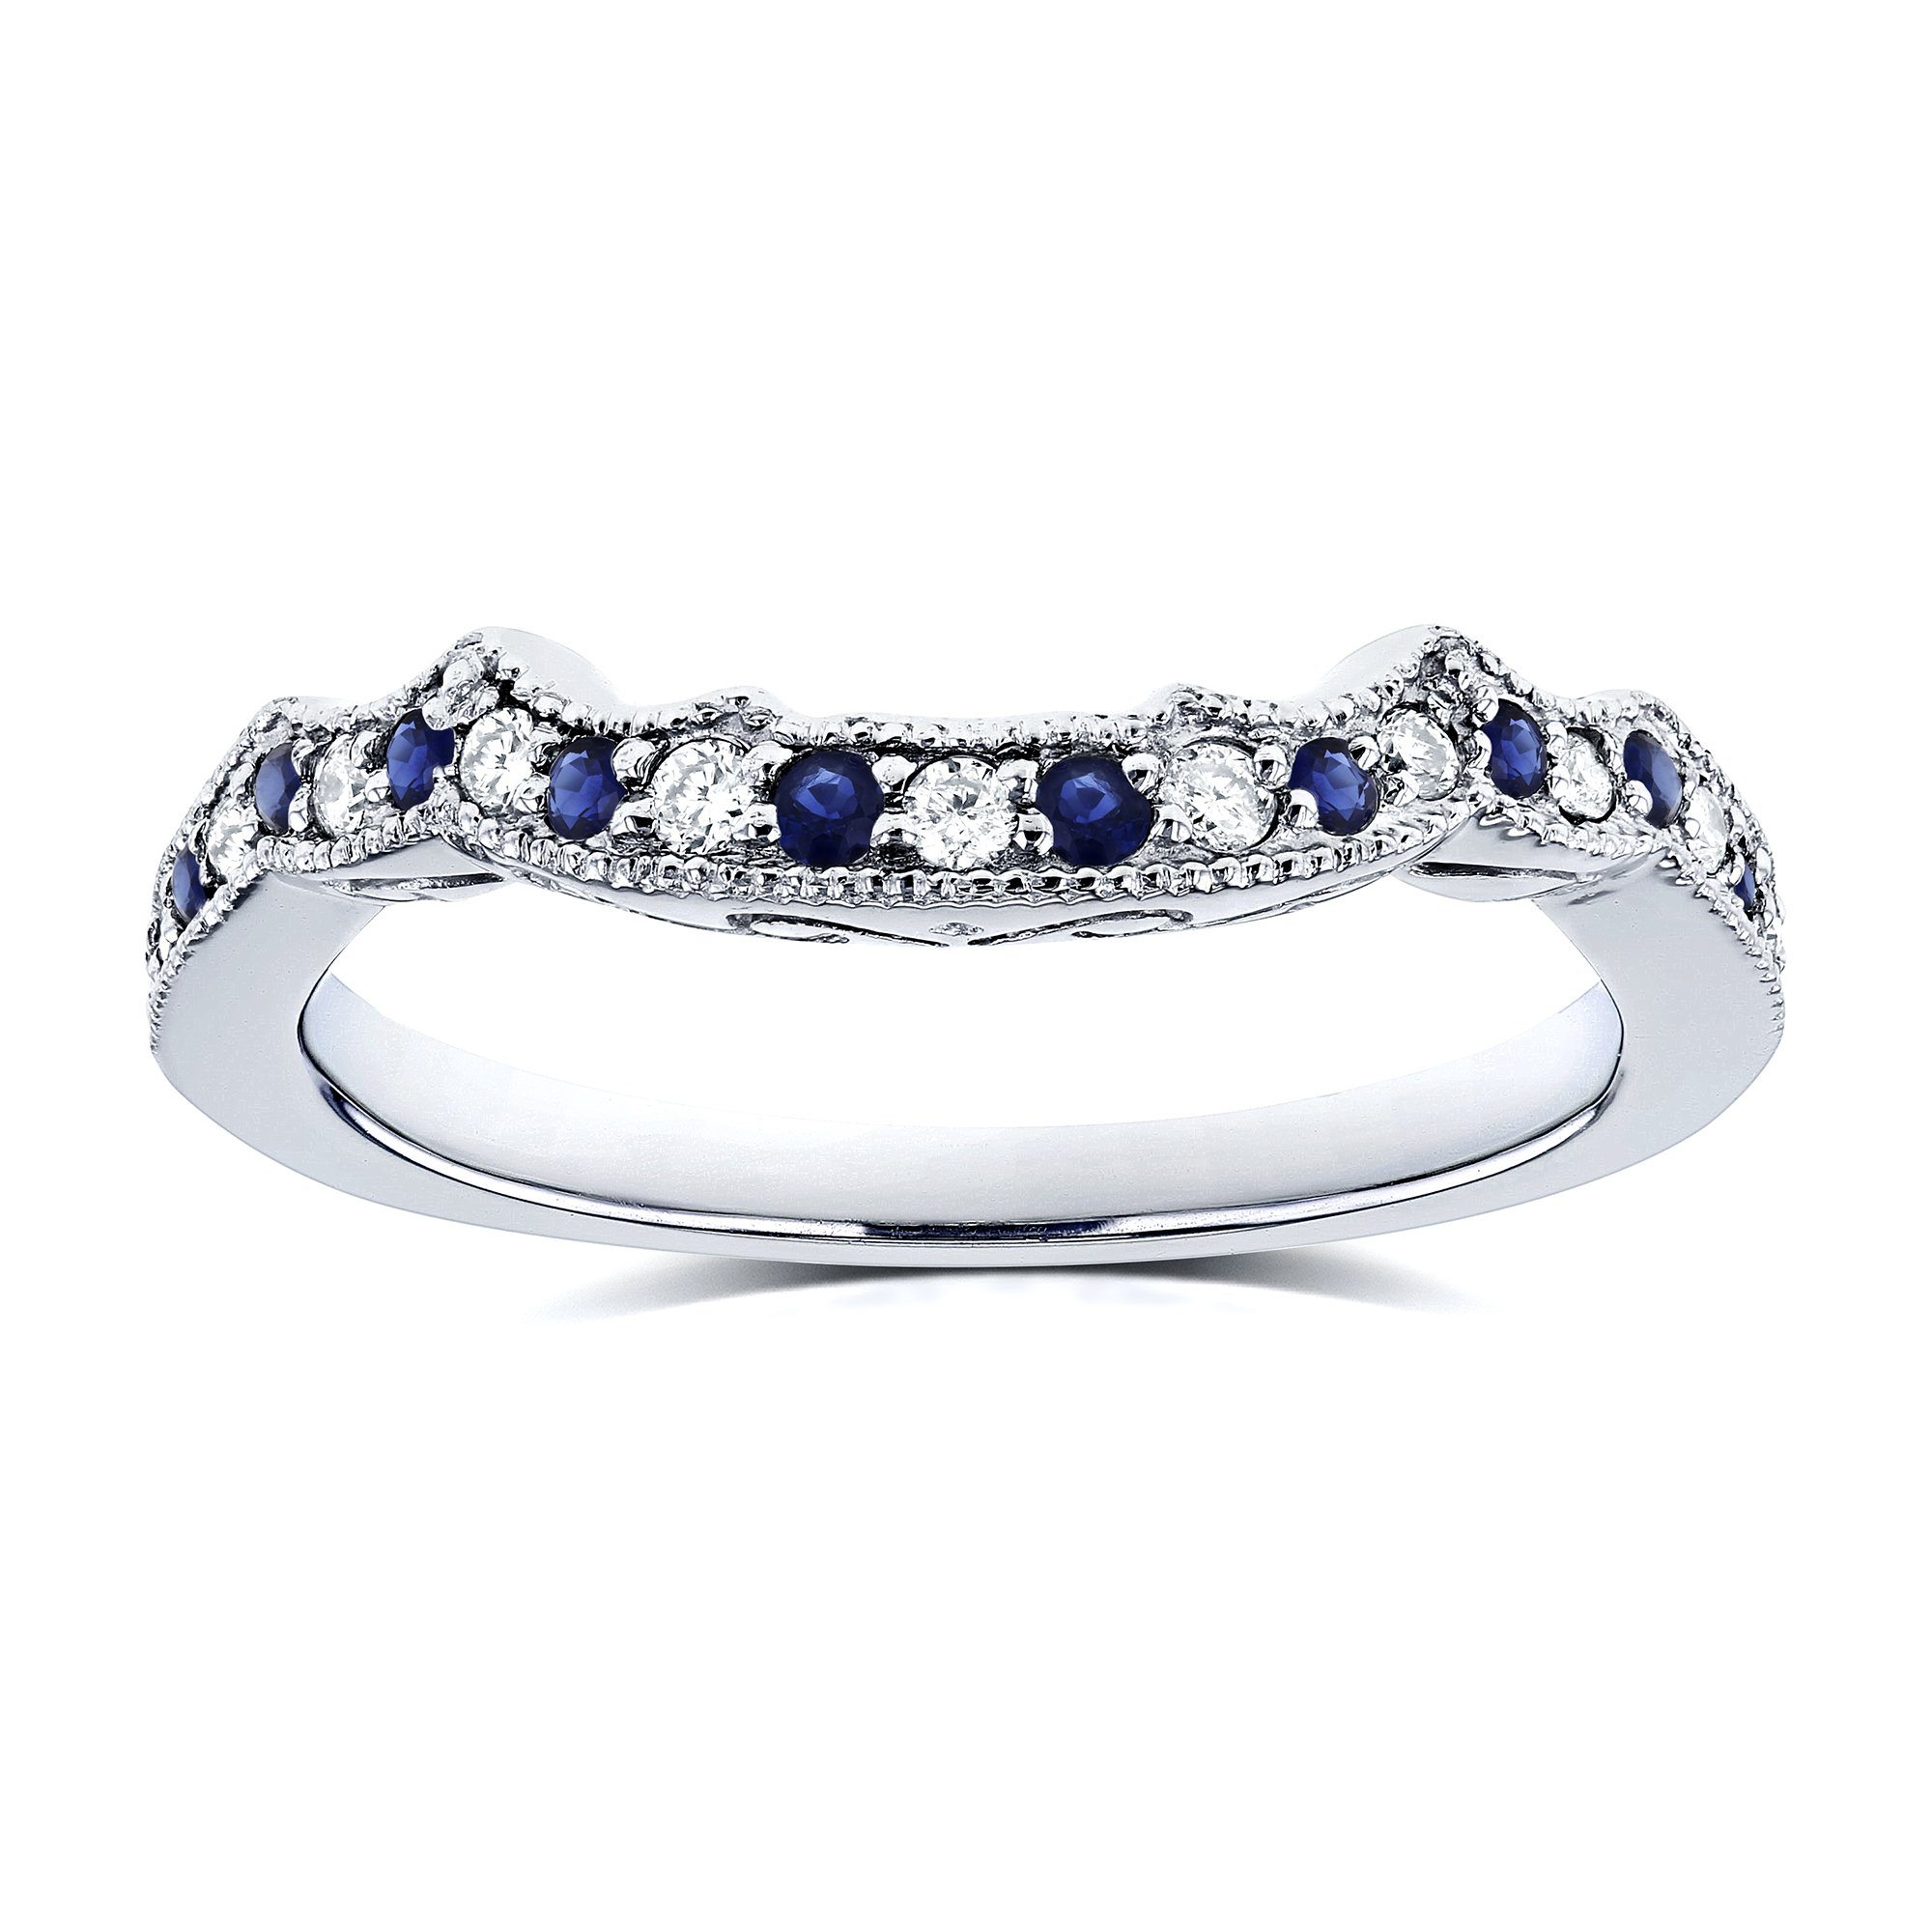 1/5ct TCW Sapphire and Diamond Contour Wedding Ring in 14k White Gold - Size 5.5